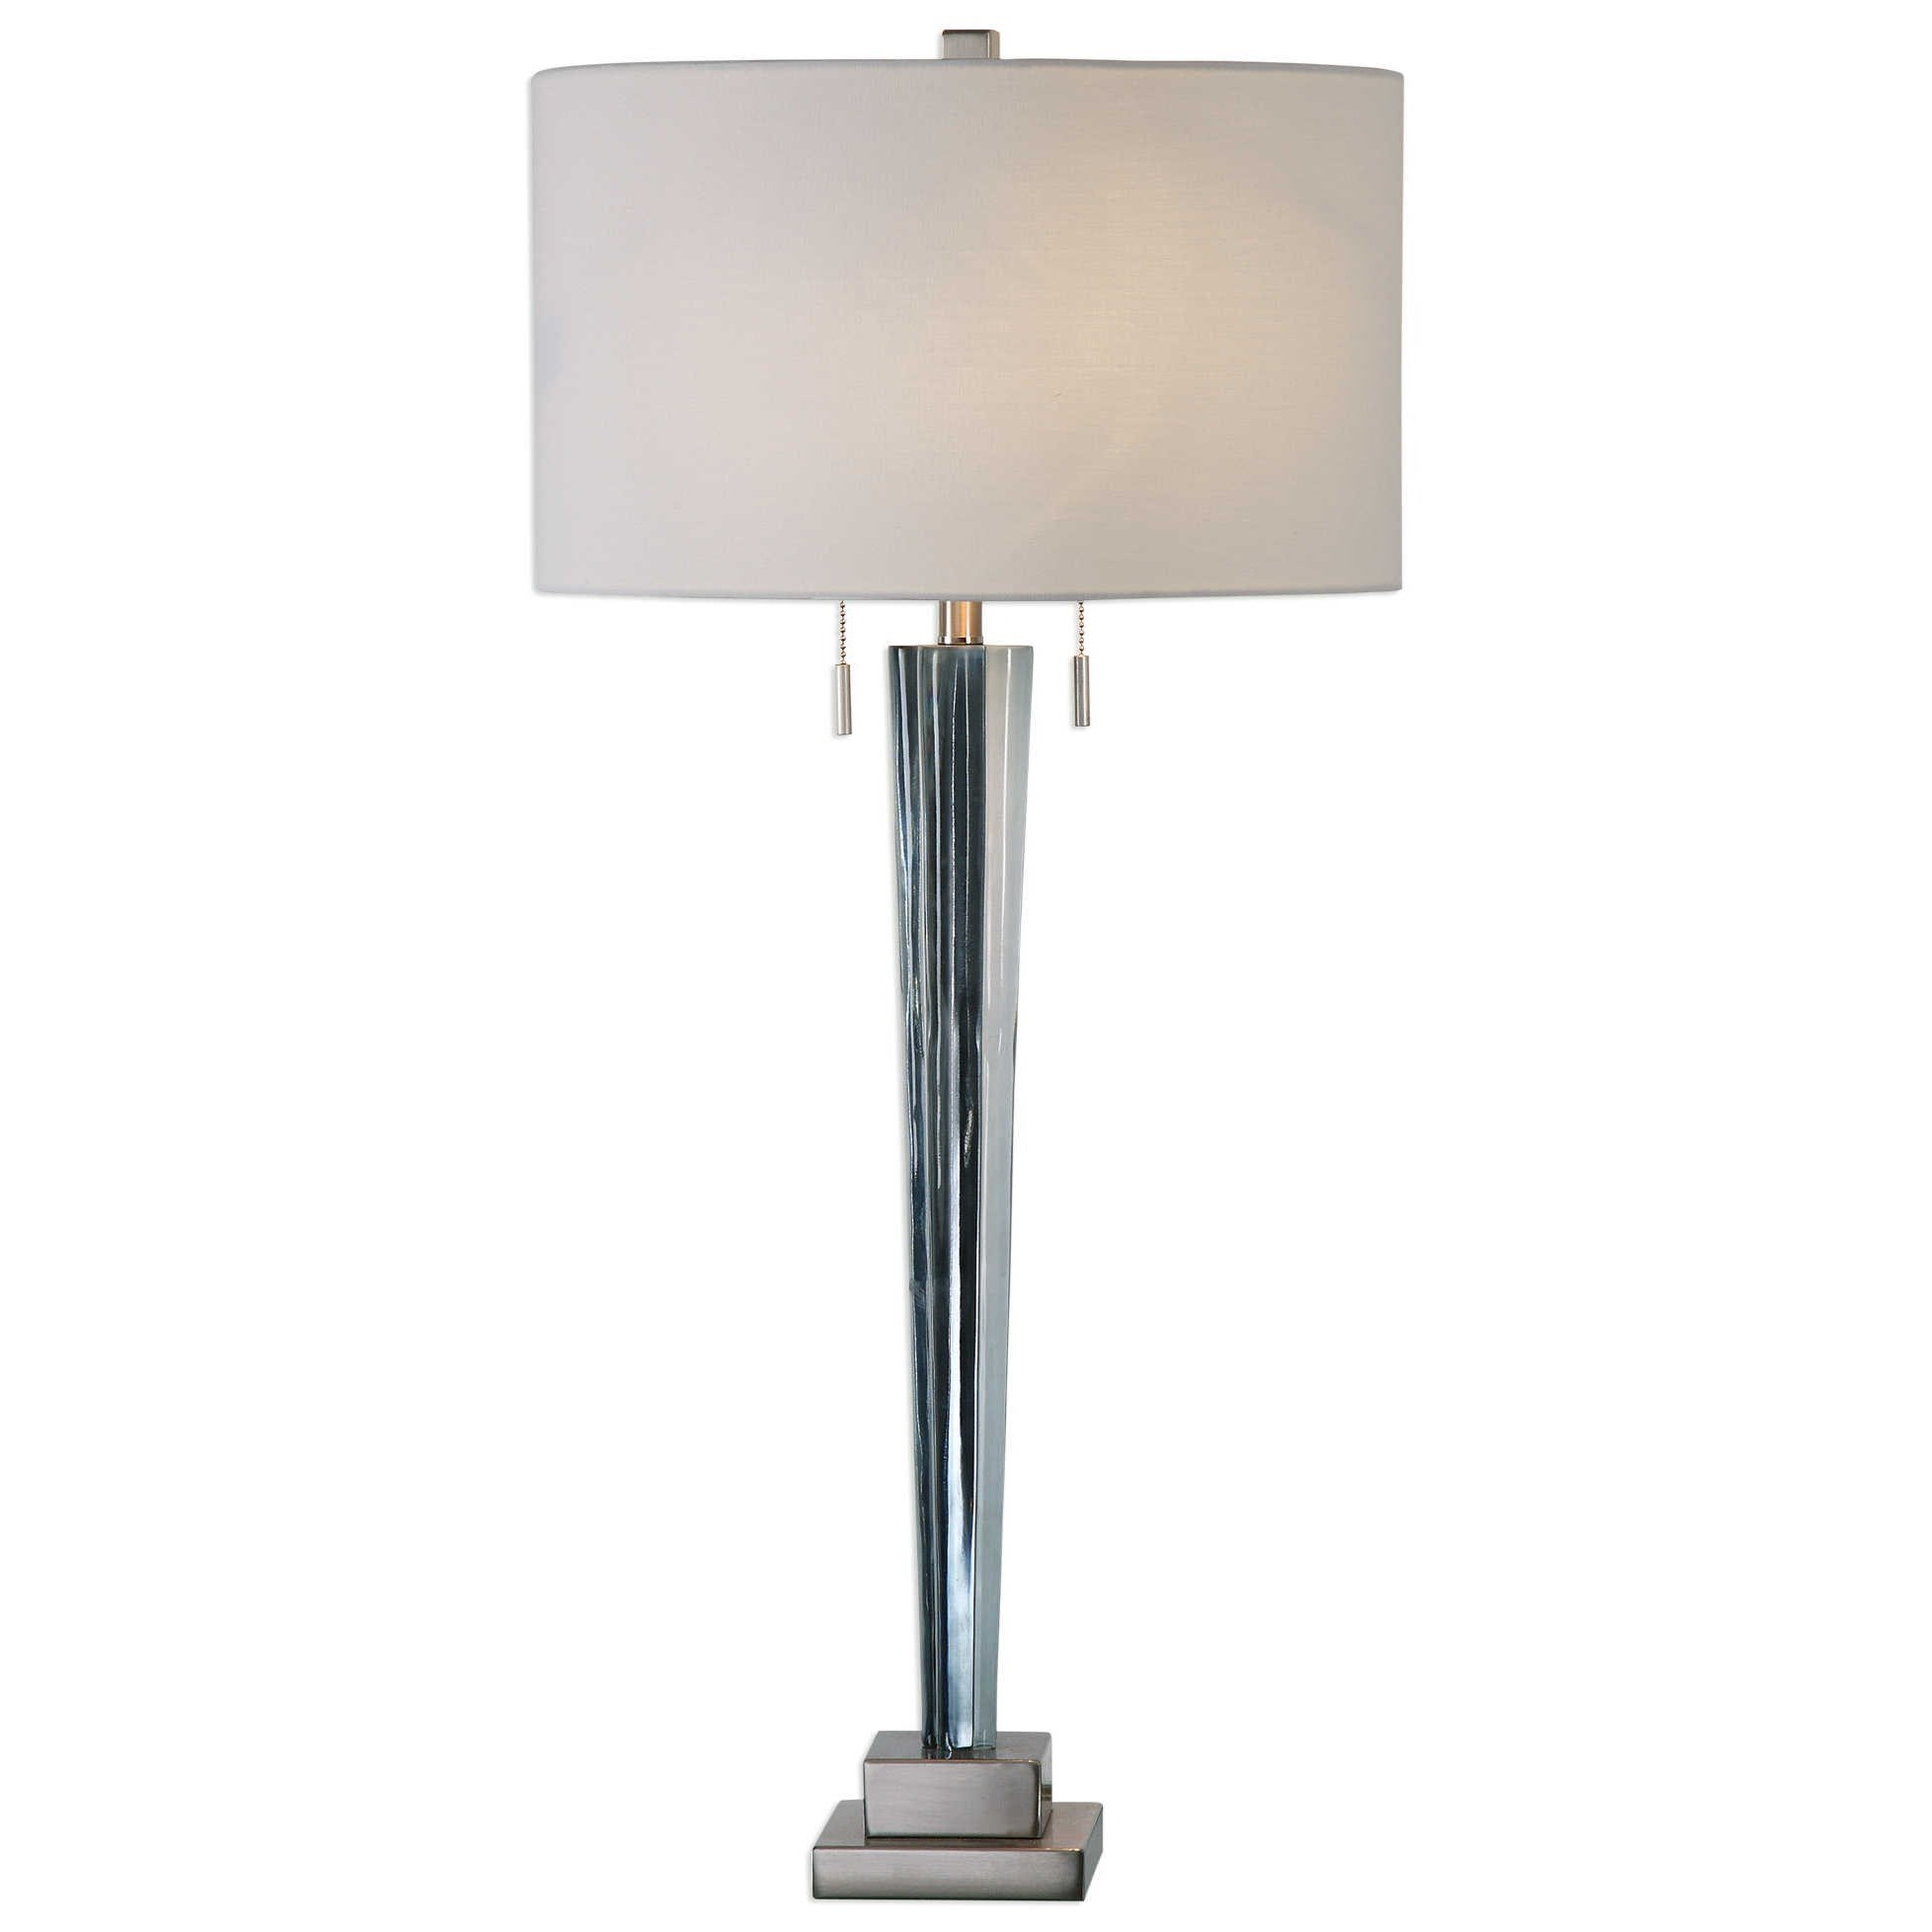 Uttermost Lamps Afina Brushed Nickel Table Lamp